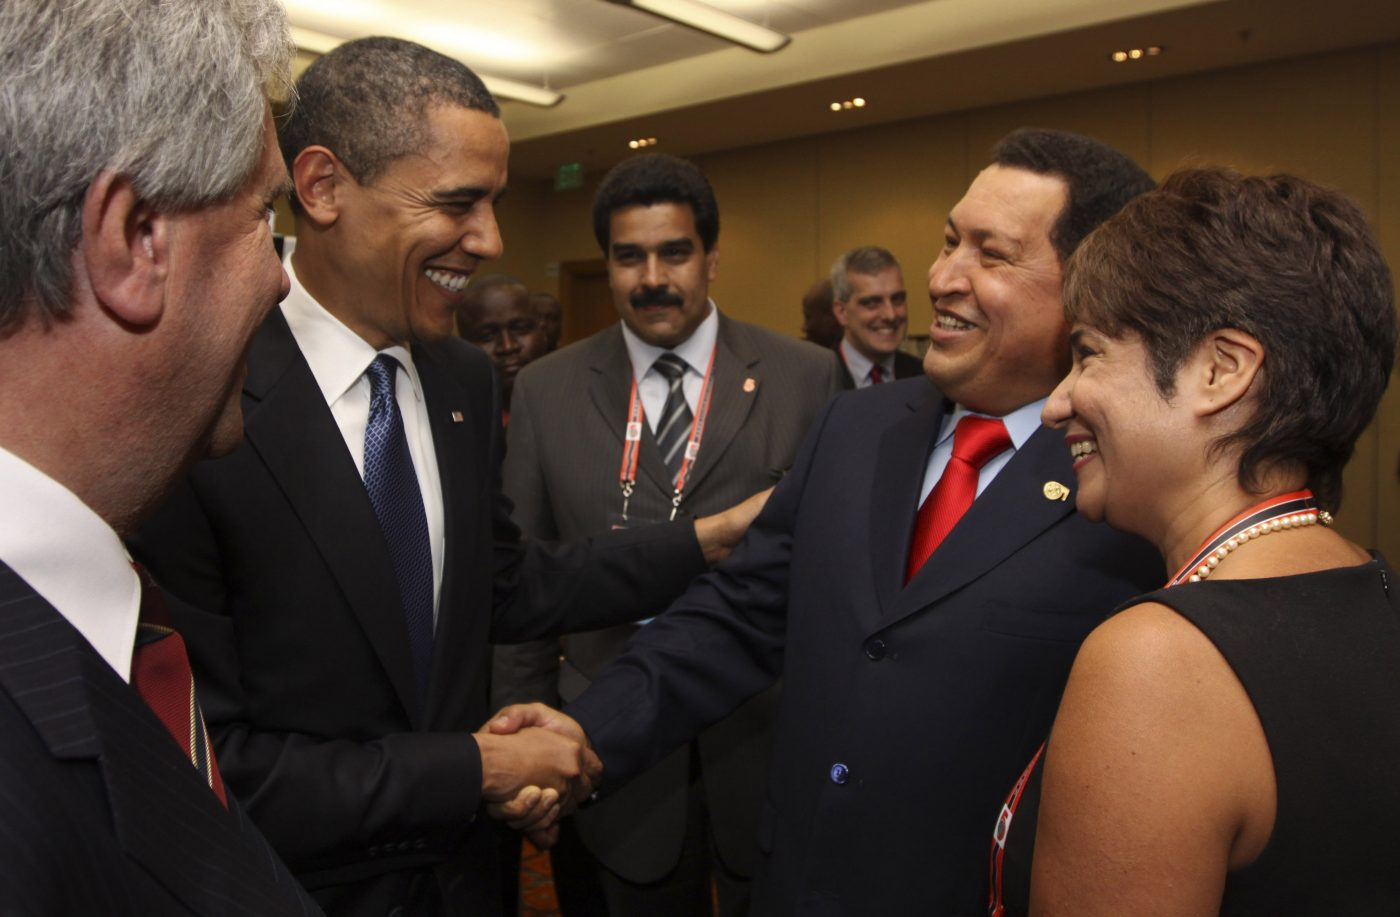 FILE - In this April 17, 2009 file photo, President Barack Obama, left, shakes hands with Venezuela's President Hugo Chavez before the opening session of the 5th Summit of the Americas in Port of Spain, Trinidad and Tobago. Venezuela's Vice President Nicolas Maduro announced on Tuesday, March 5, 2013 that Chavez has died at age 58 after a nearly two-year bout with cancer. (AP Photo/Mariamma Kambon, Summit of the Americas, Pool, File)